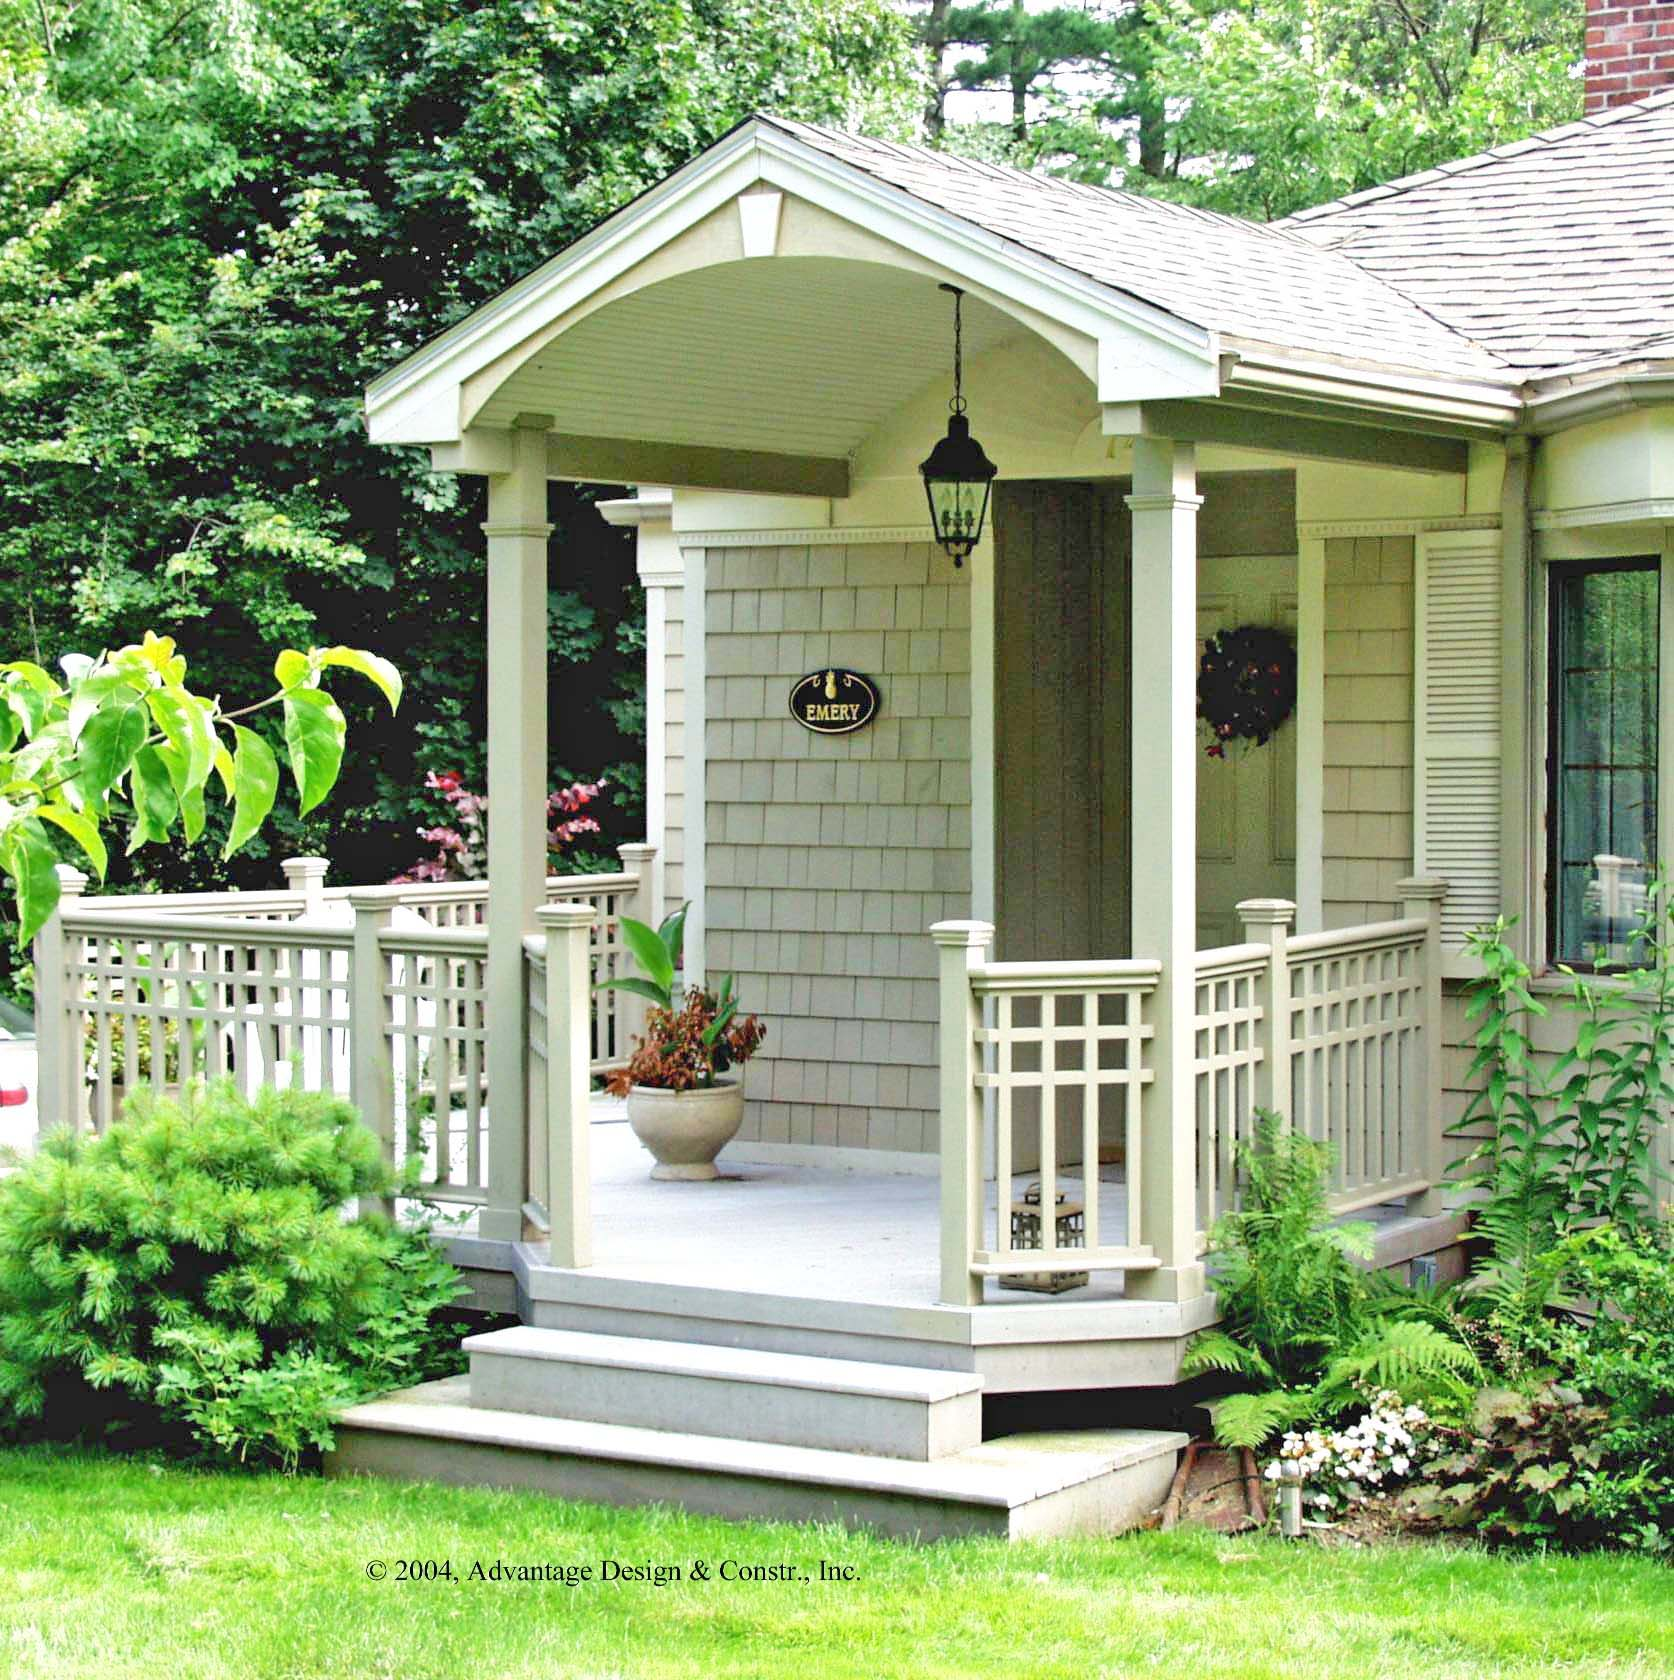 Home Design Ideas Front: Six Kinds Of Porches For Your Home